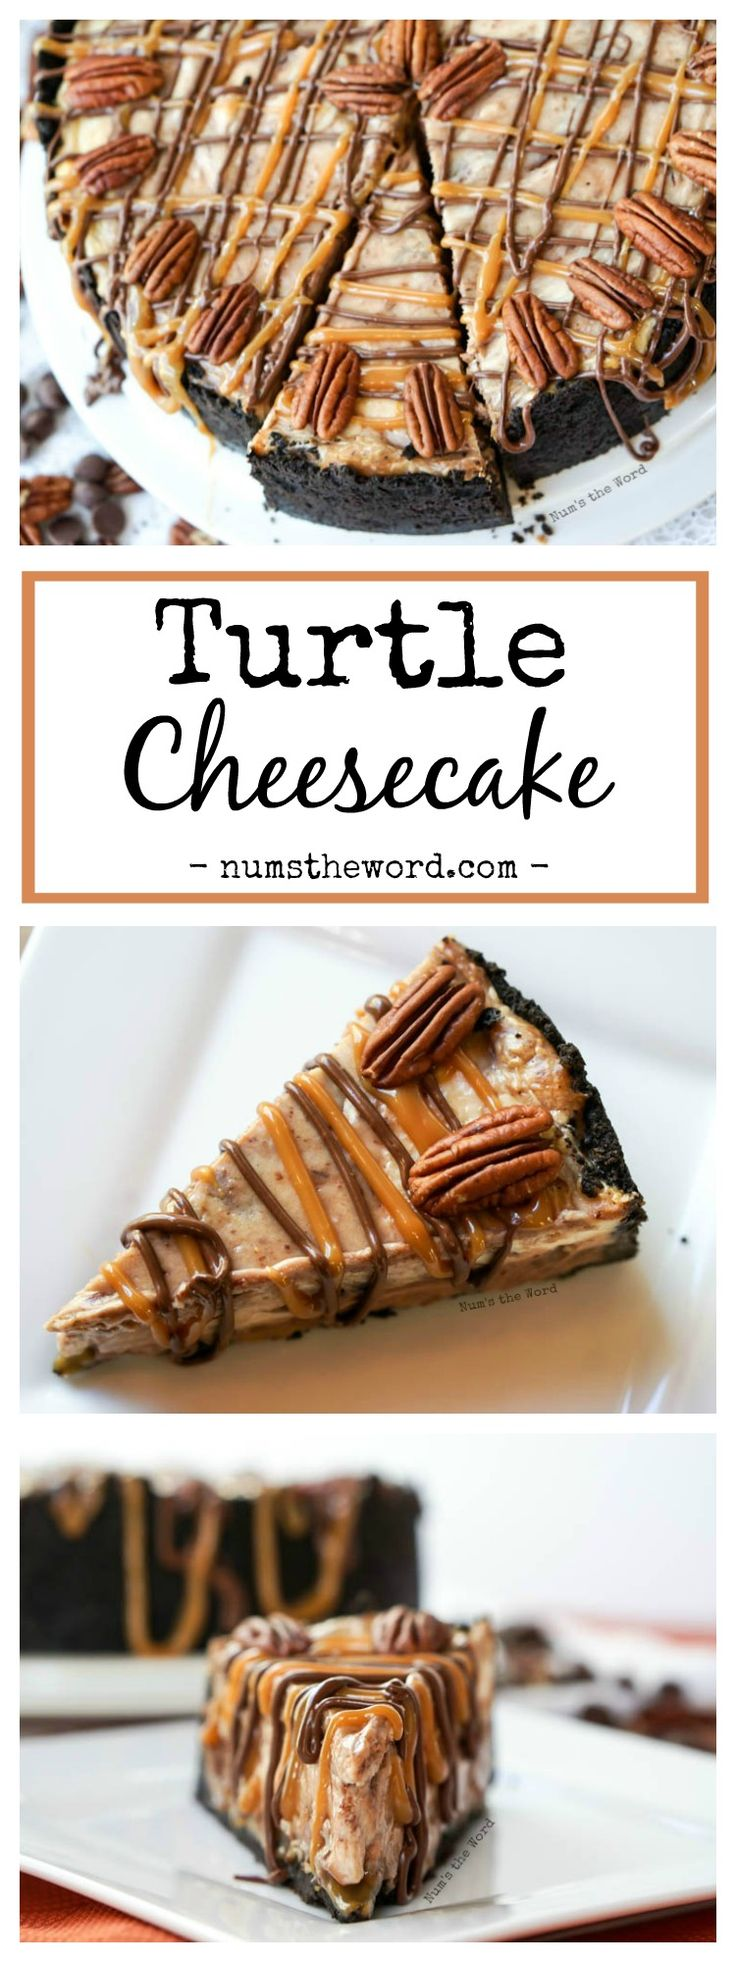 Turtle Cheesecake – A chocolate swirl cheesecake with a layer of caramel and pecans held together with a Oreo cookie crust.